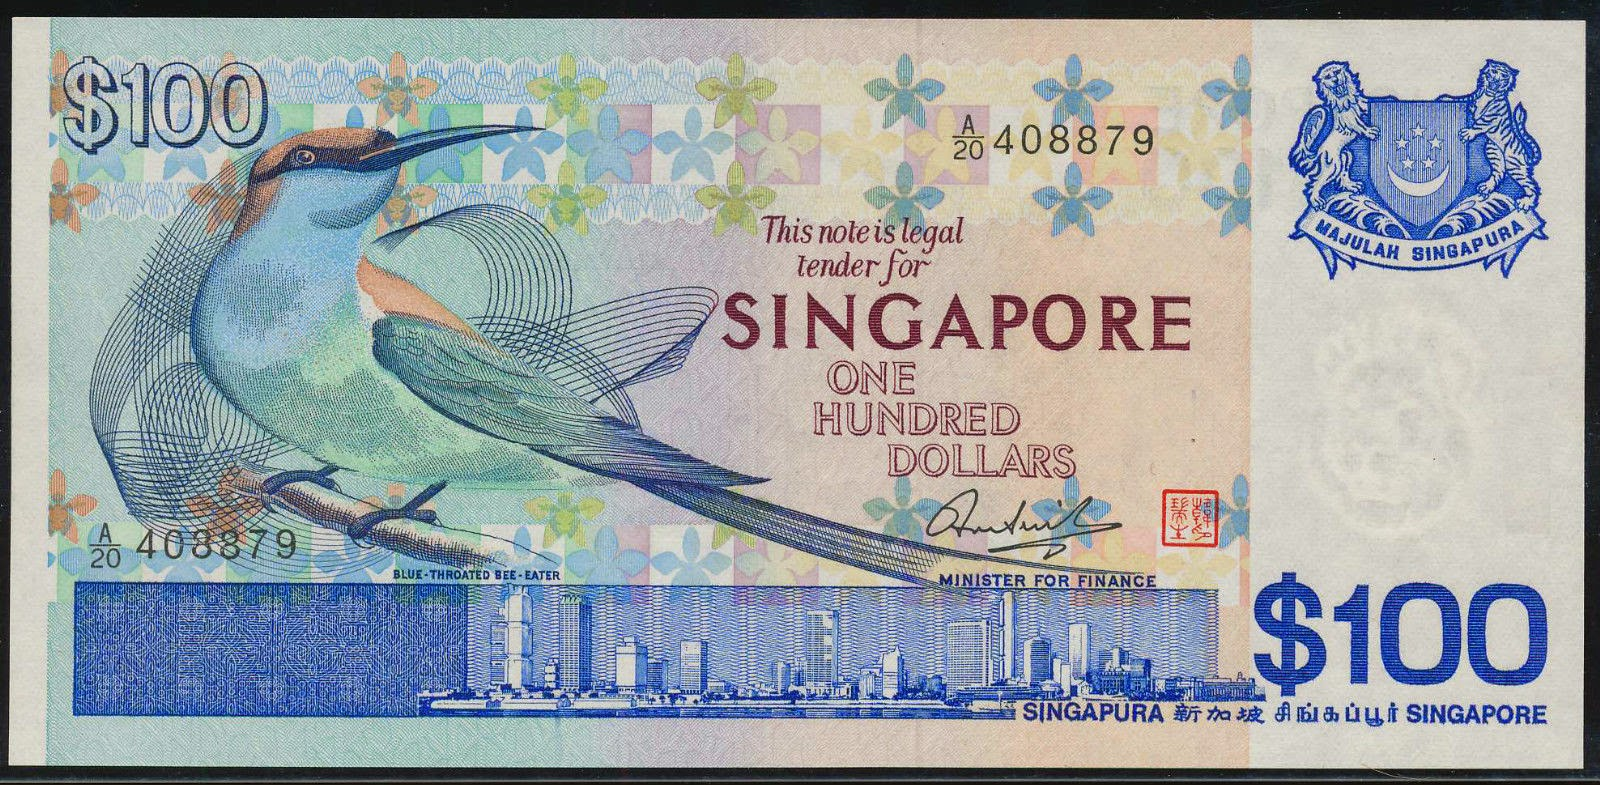 Singapore currency notes 100 Dollars banknote Bird Series